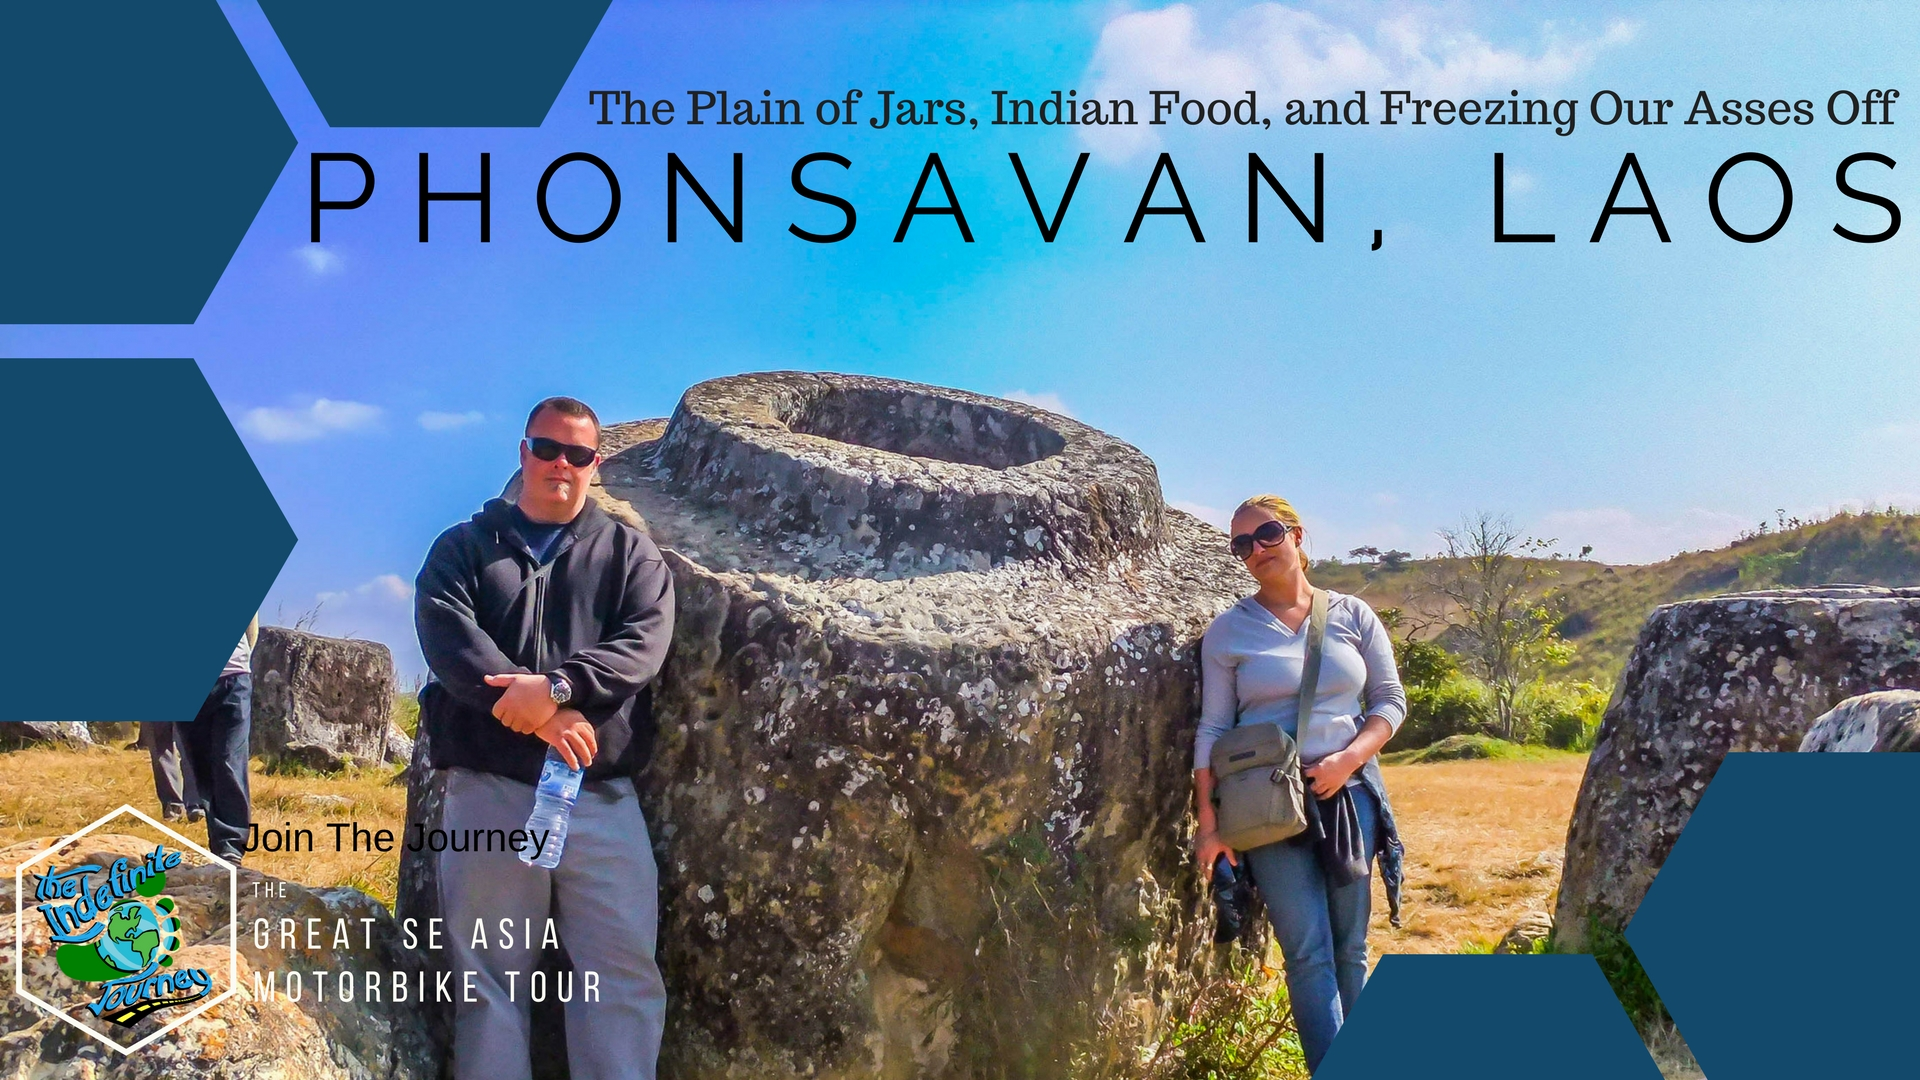 Phonsavan, Laos - The Plain of Jars, Indian Food, and Freezing Our Asses Off